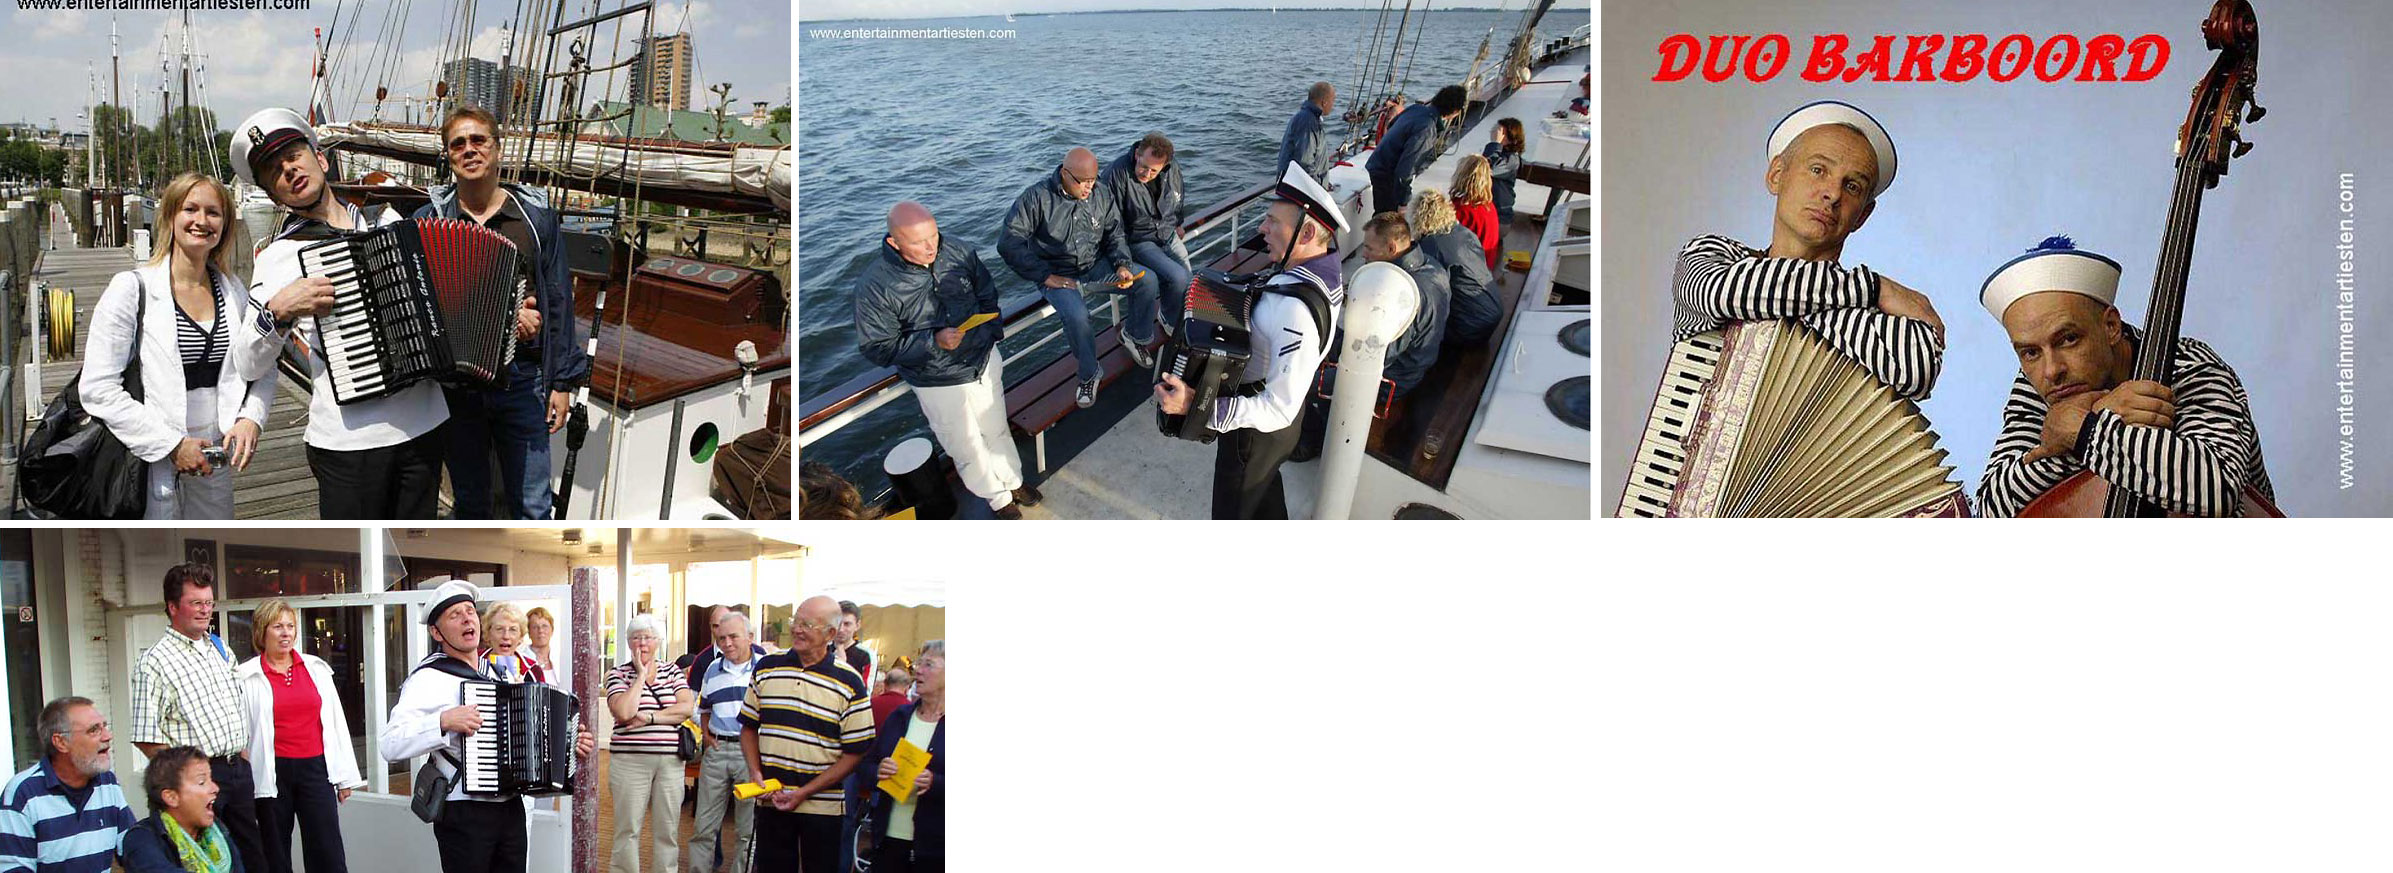 Nautisch- Maritiem entertainment, havenliederen, muzikanten, accordeon, havenmuziek, www.goversartiesten.nl